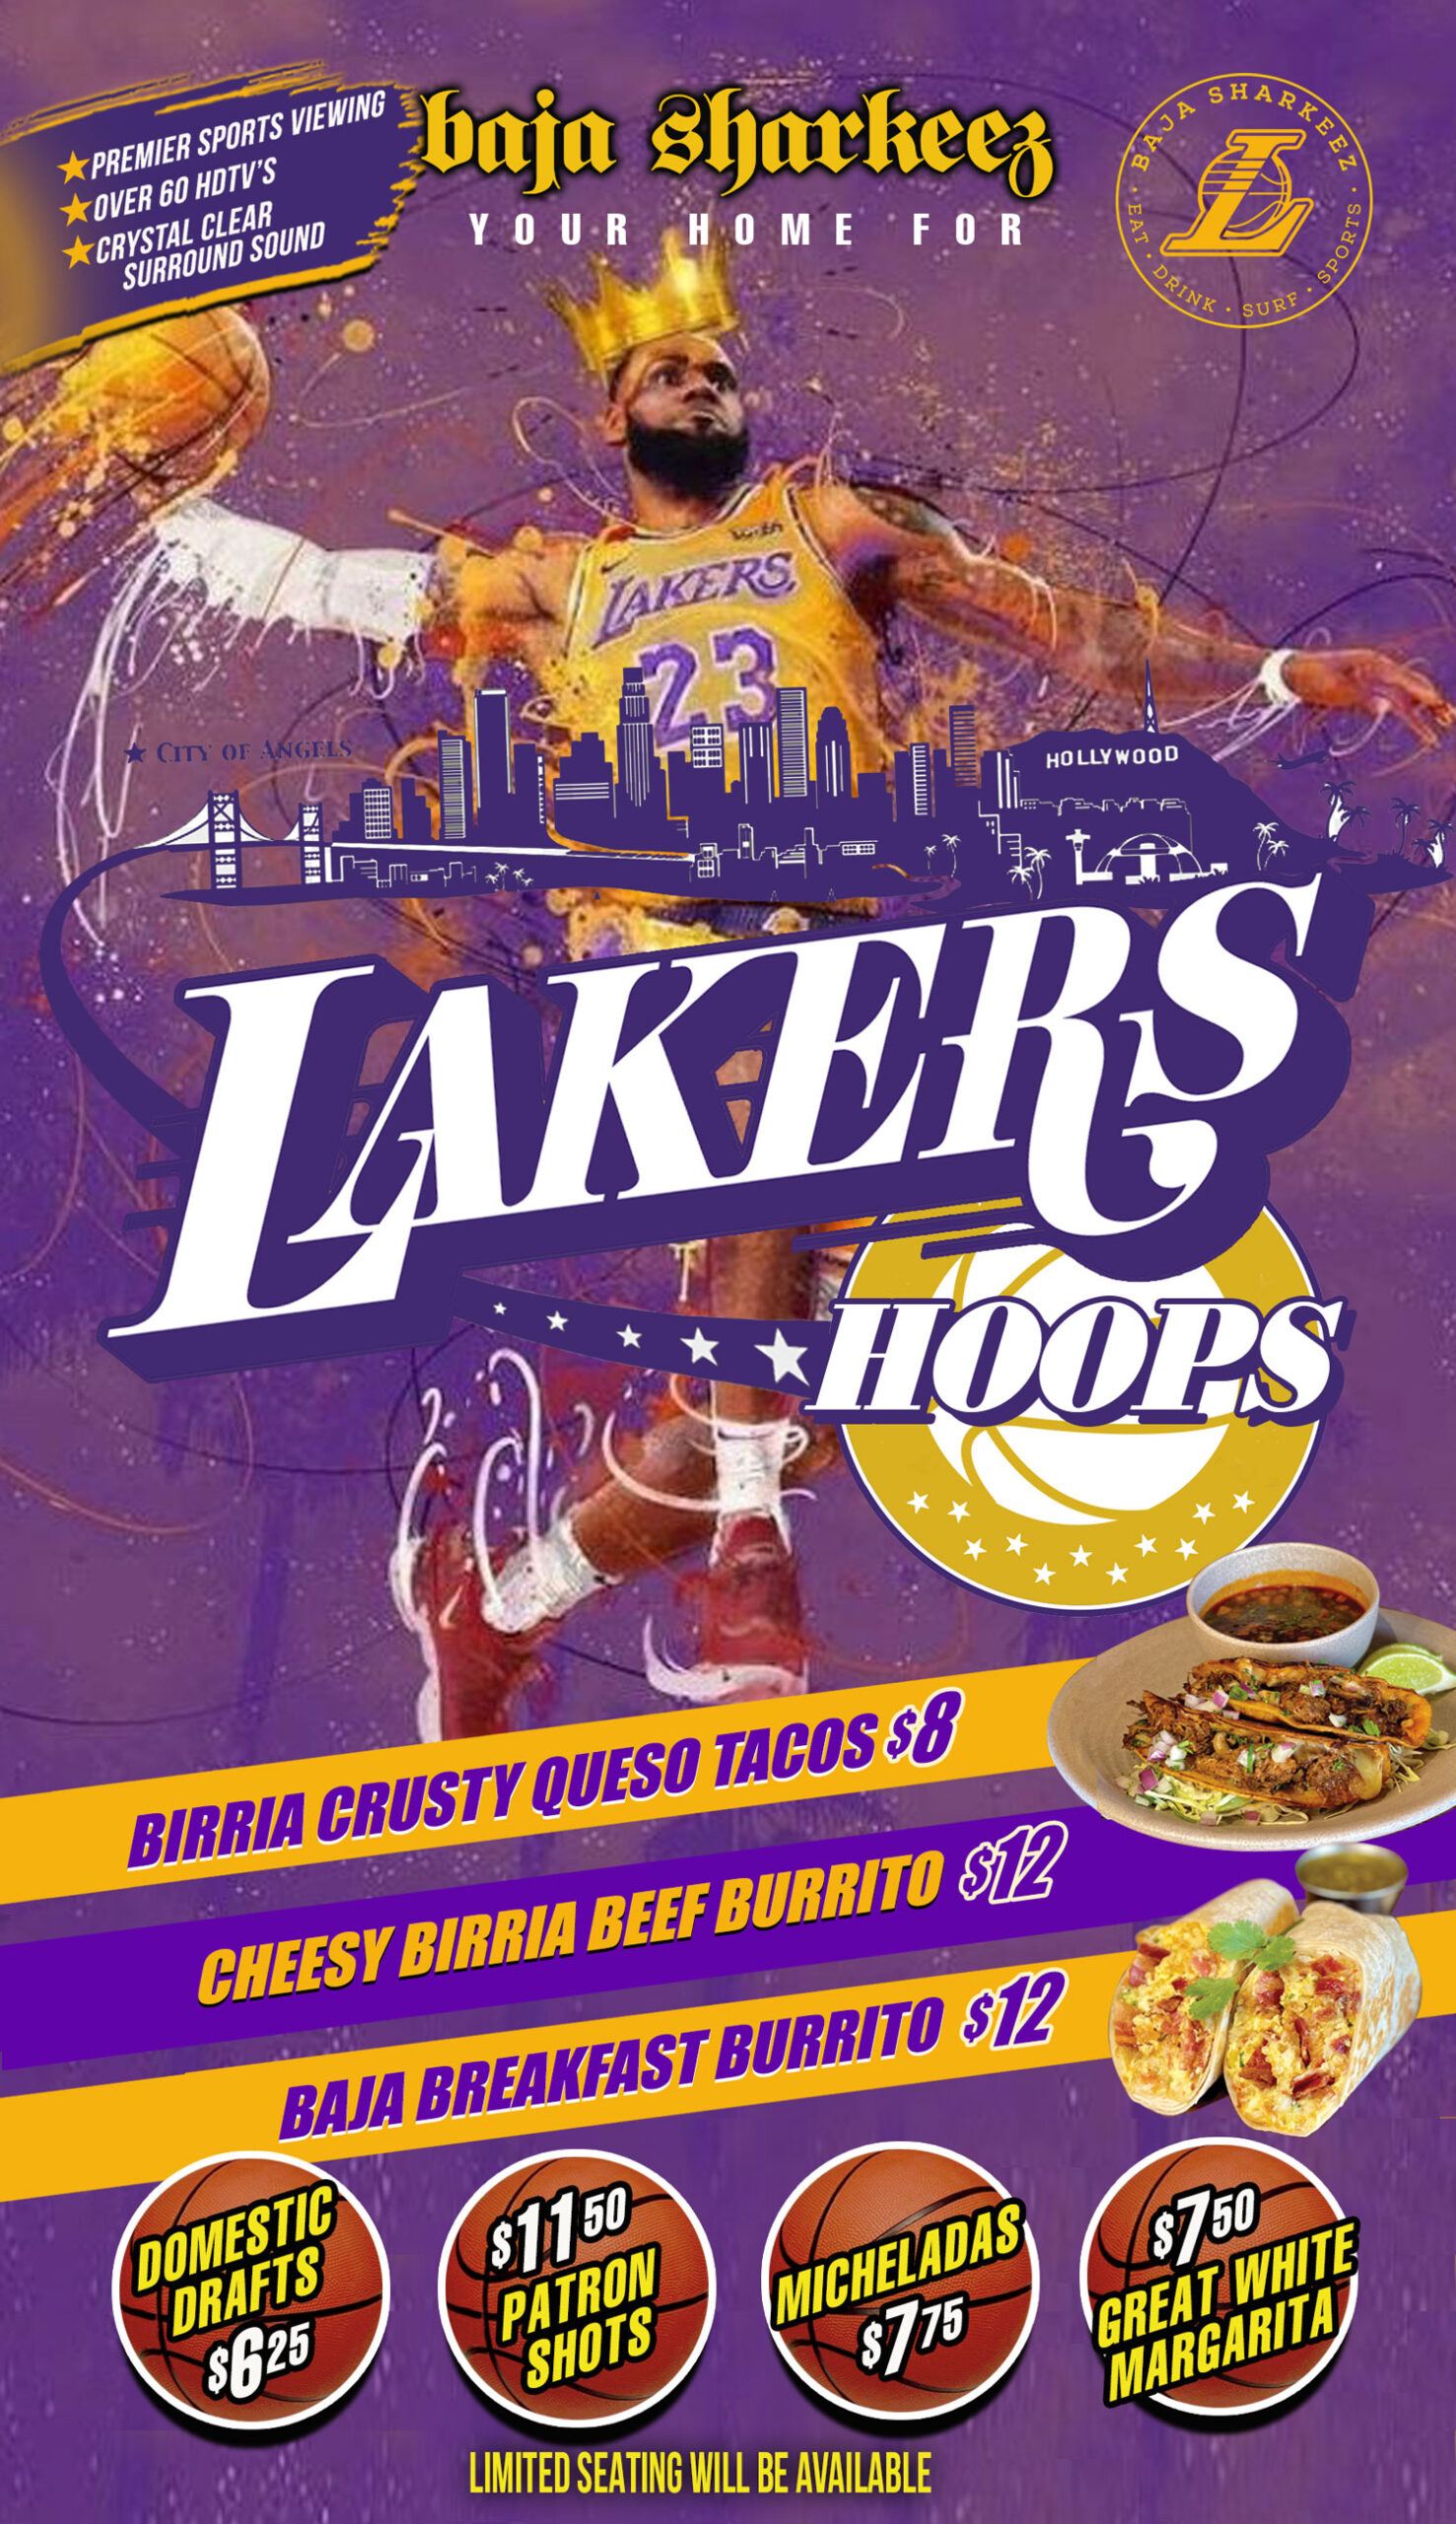 Sharkeez-Lakers-front-2021-